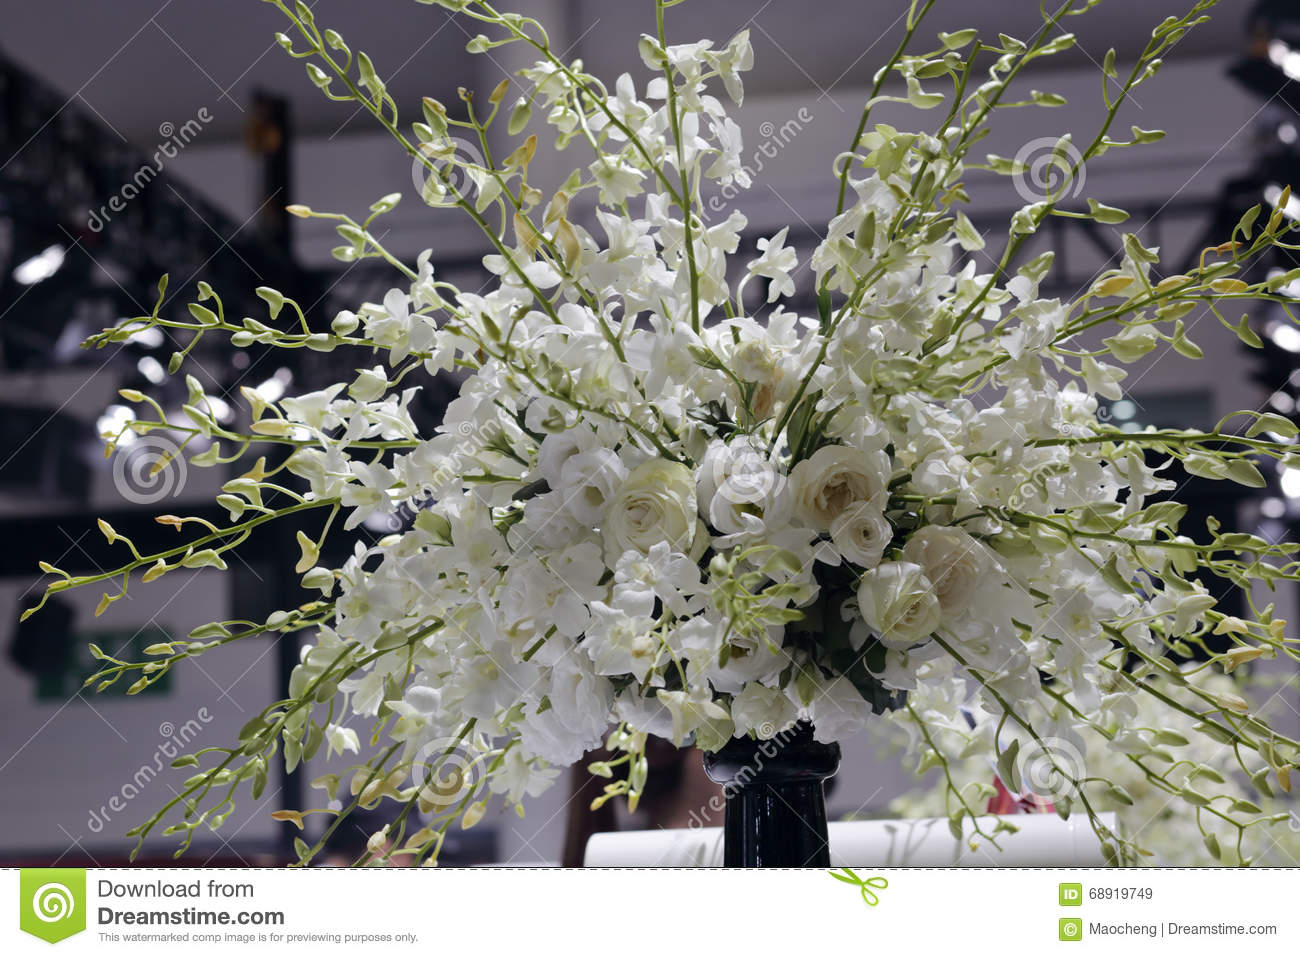 White flower arrangement stock image image of black 68919749 download white flower arrangement stock image image of black 68919749 mightylinksfo